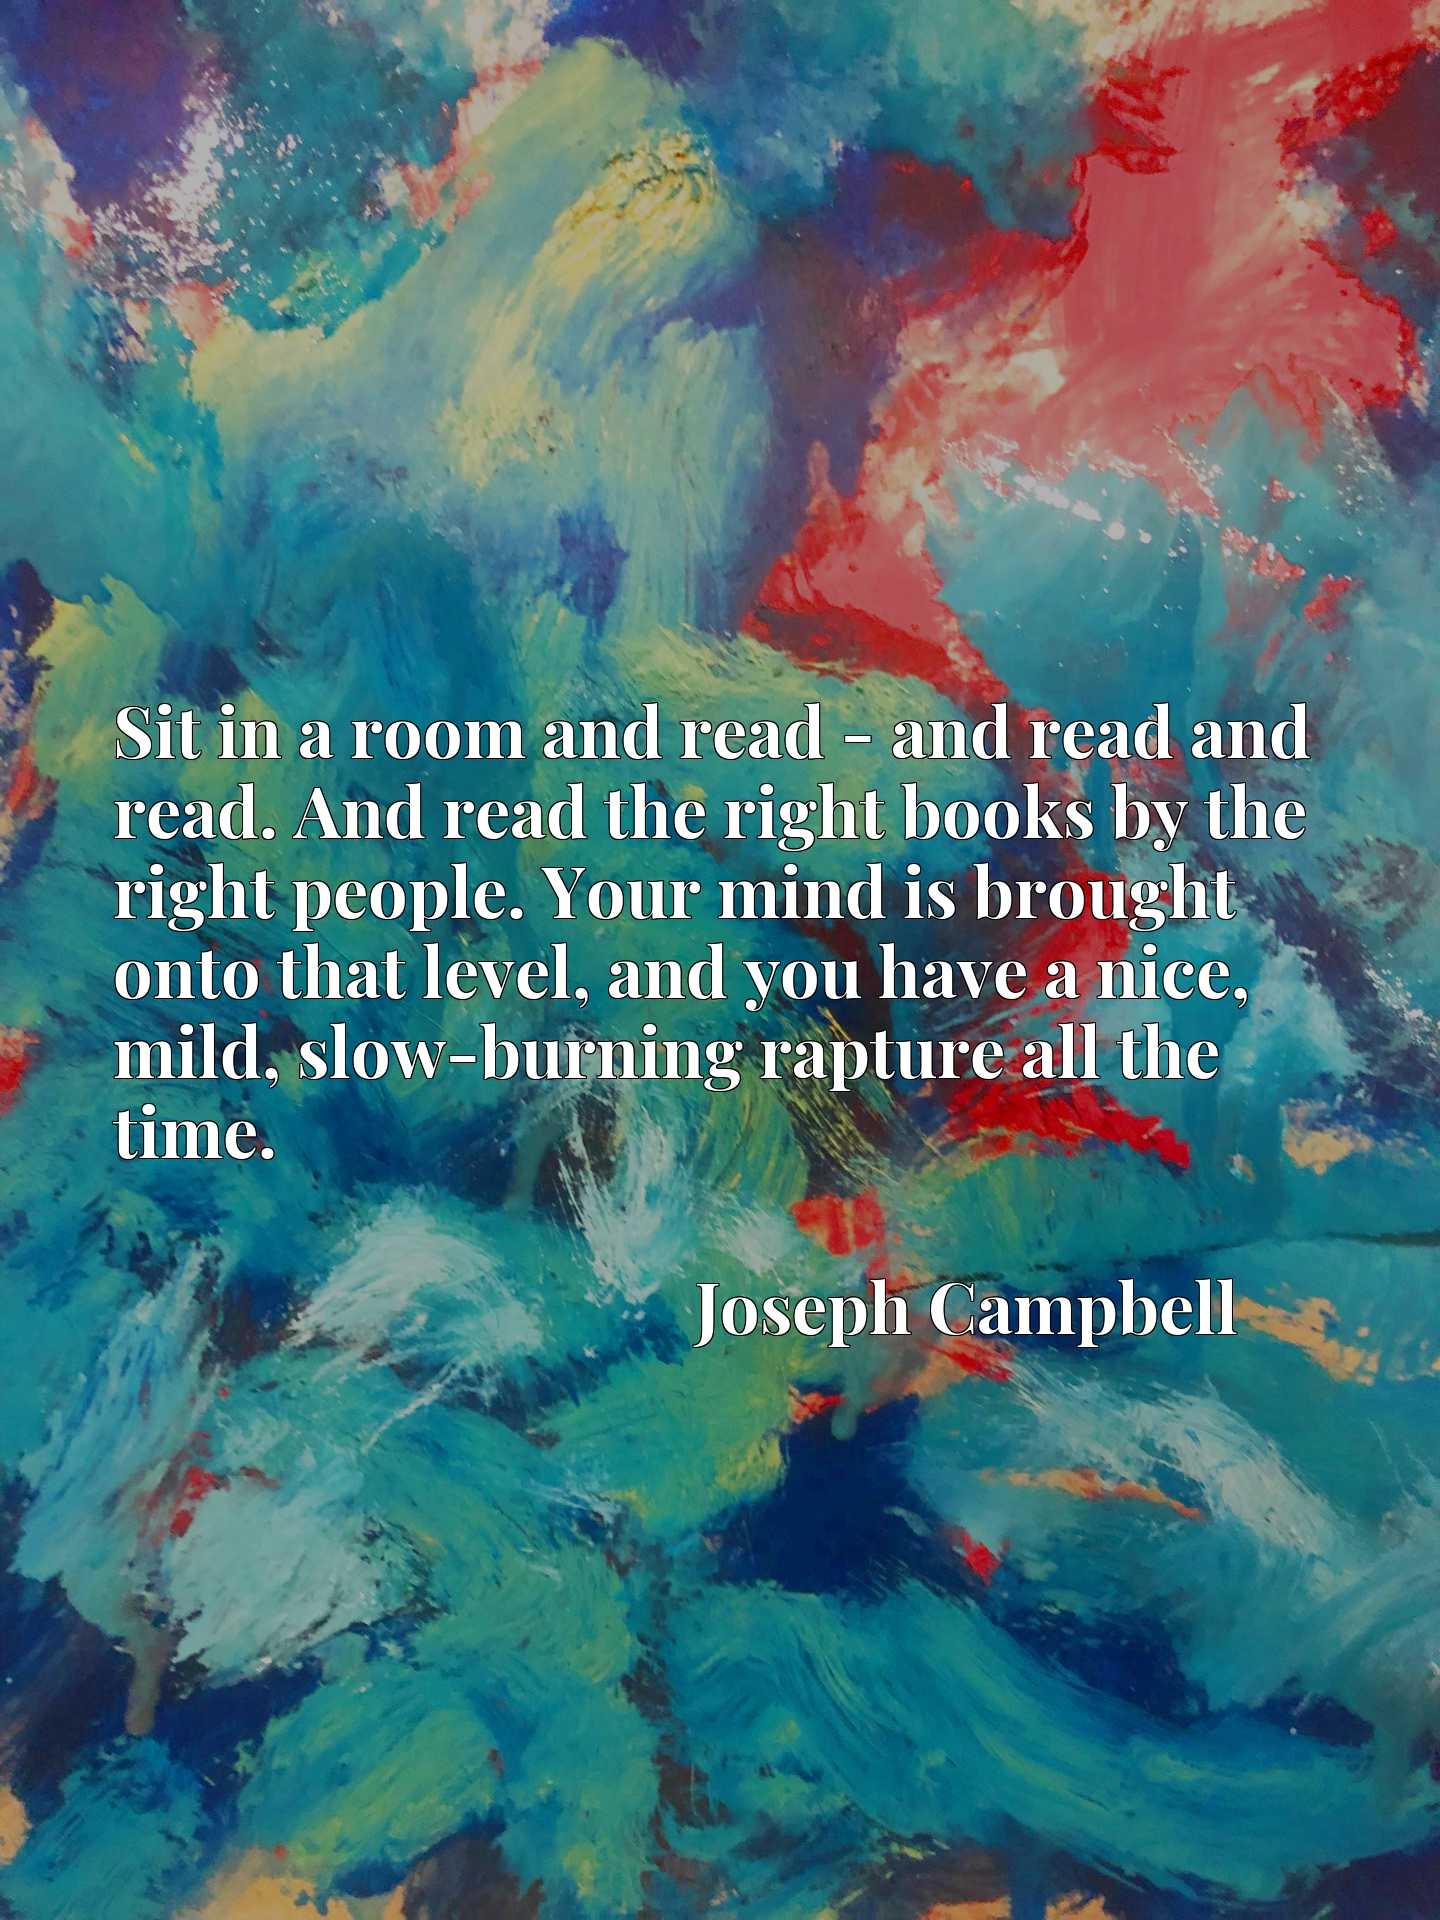 Sit in a room and read - and read and read. And read the right books by the right people. Your mind is brought onto that level, and you have a nice, mild, slow-burning rapture all the time.